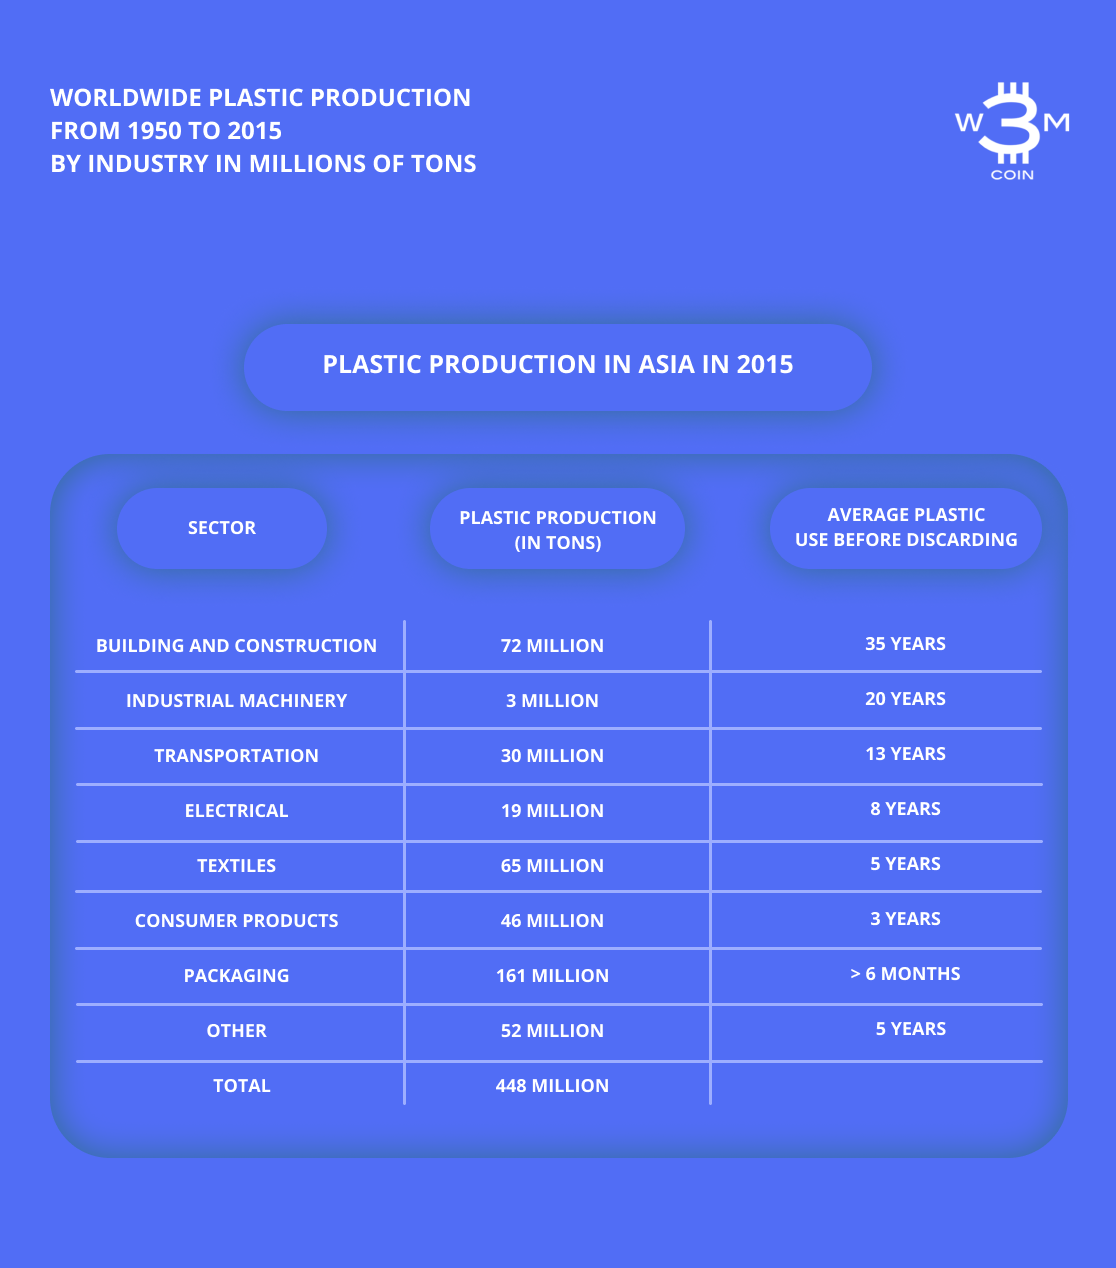 Worldwide Plastic Production from 1950 to 2015 by Industry in Millions of Tons